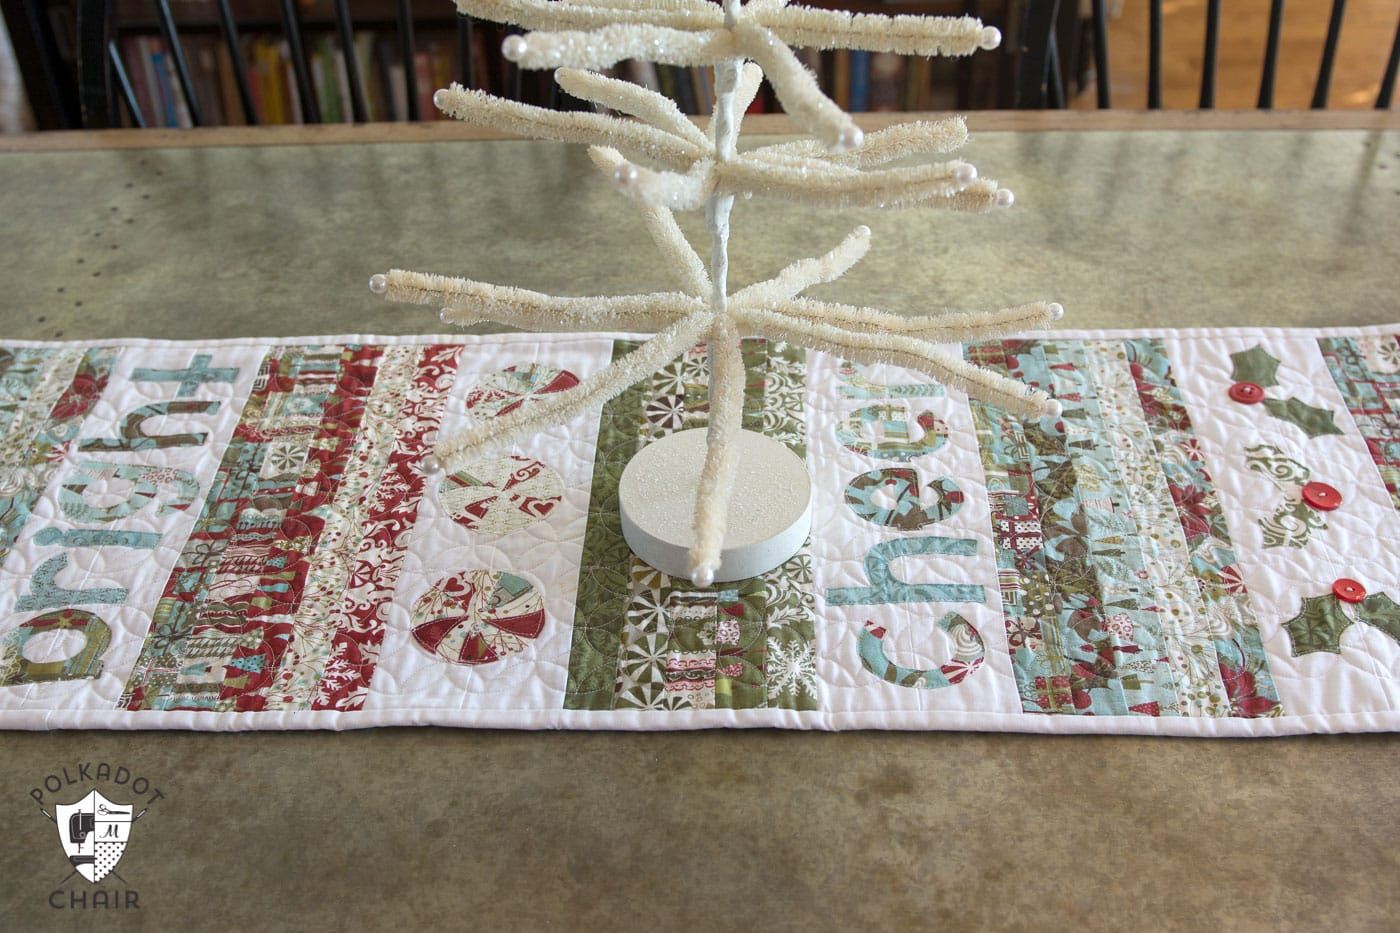 merry and cheer quilted table runner